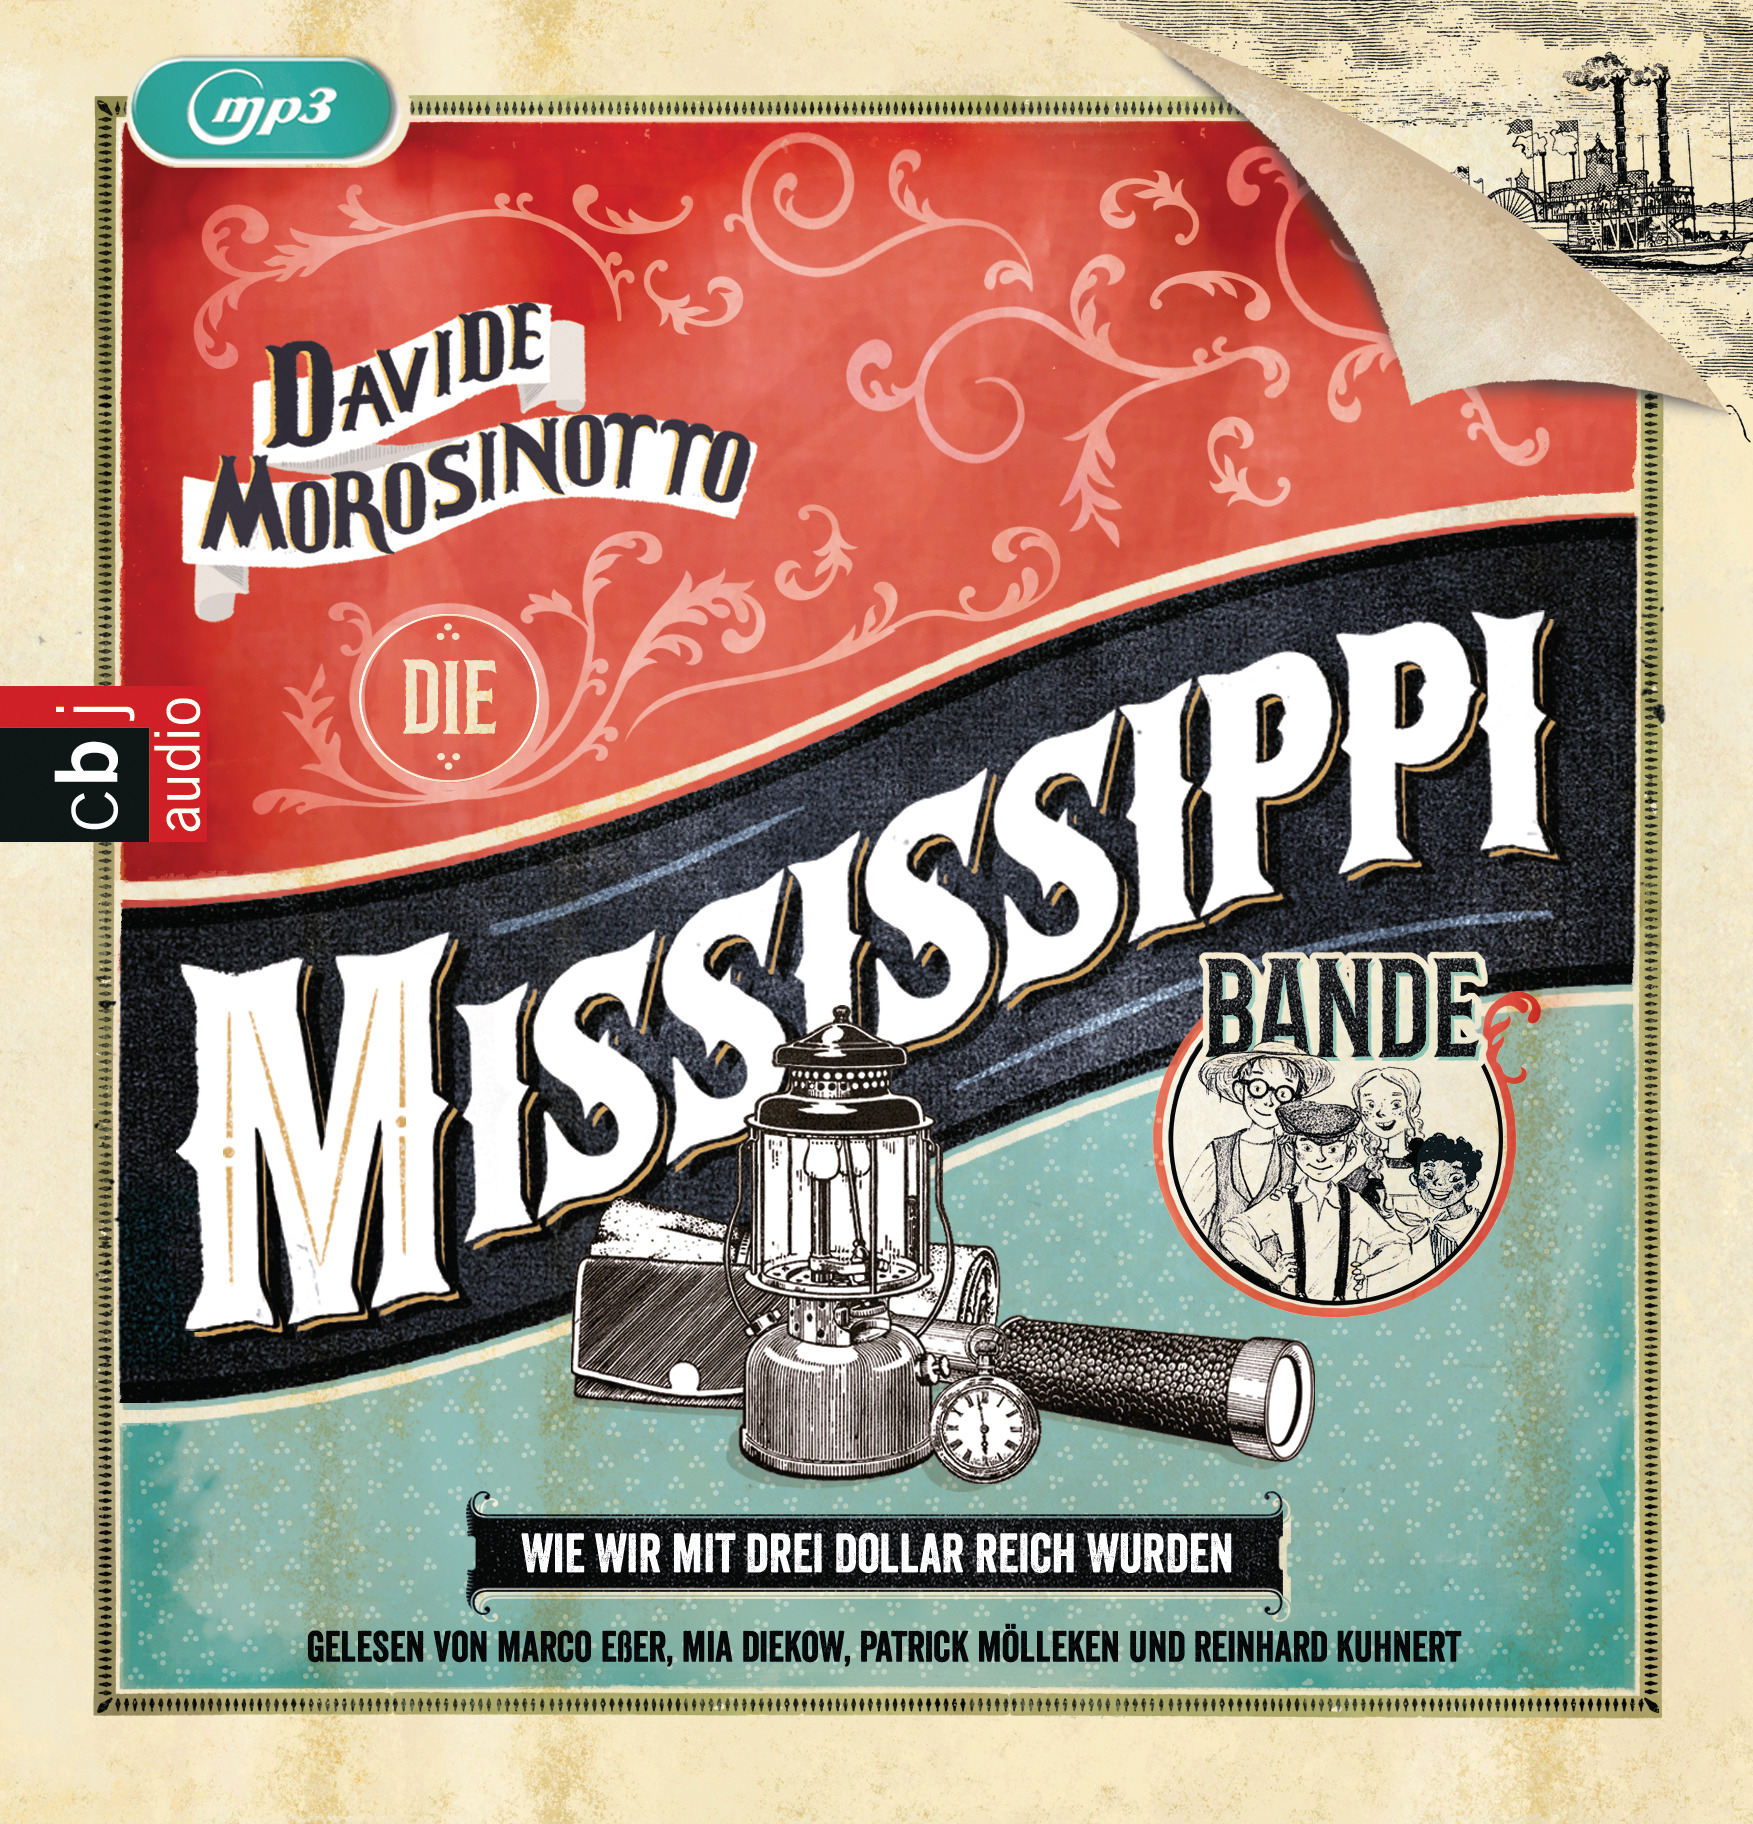 https://www.randomhouse.de/content/edition/covervoila_hires/Morosinotto_DDie_Mississippi-Bande1MP3_174737.jpg